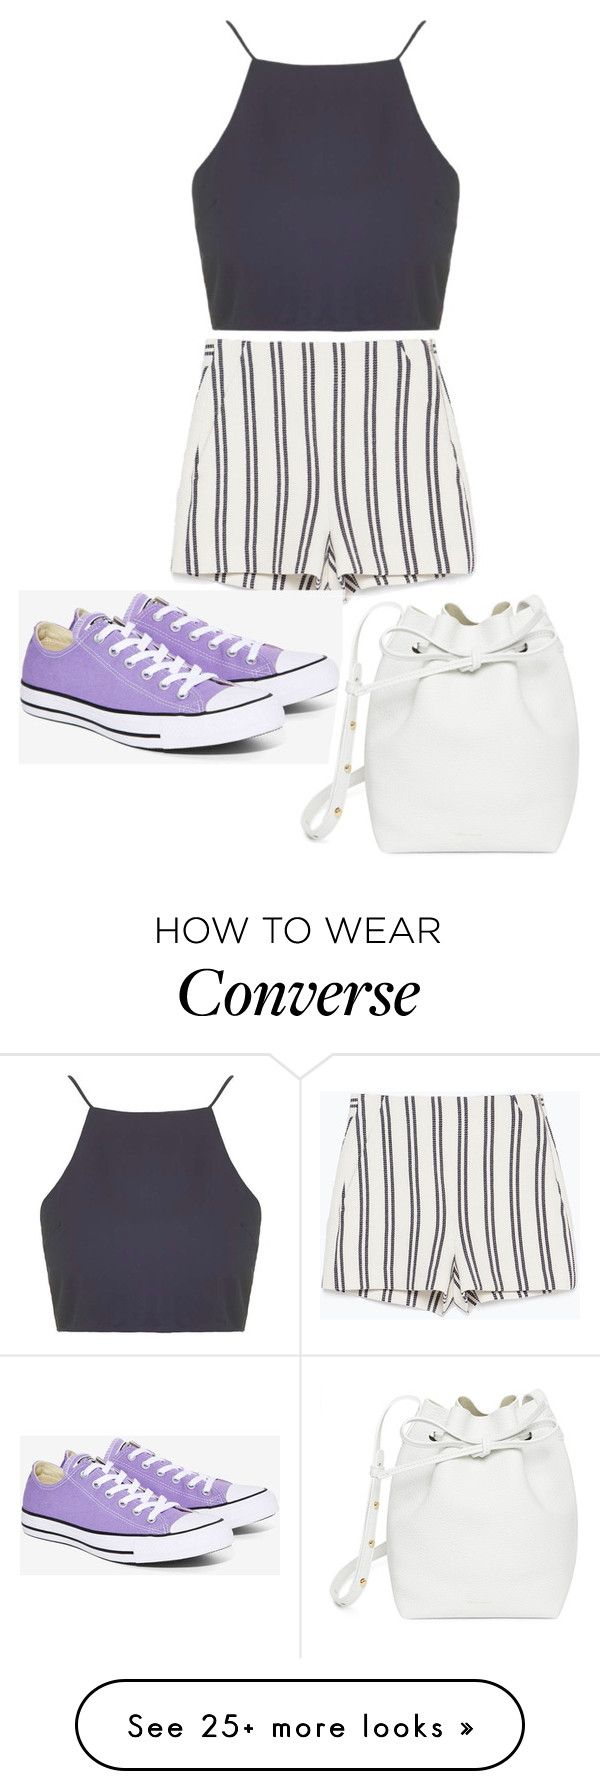 """Untitled #8802"" by beatrizibelo on Polyvore featuring Topshop, Zara, Converse and Mansur Gavriel"